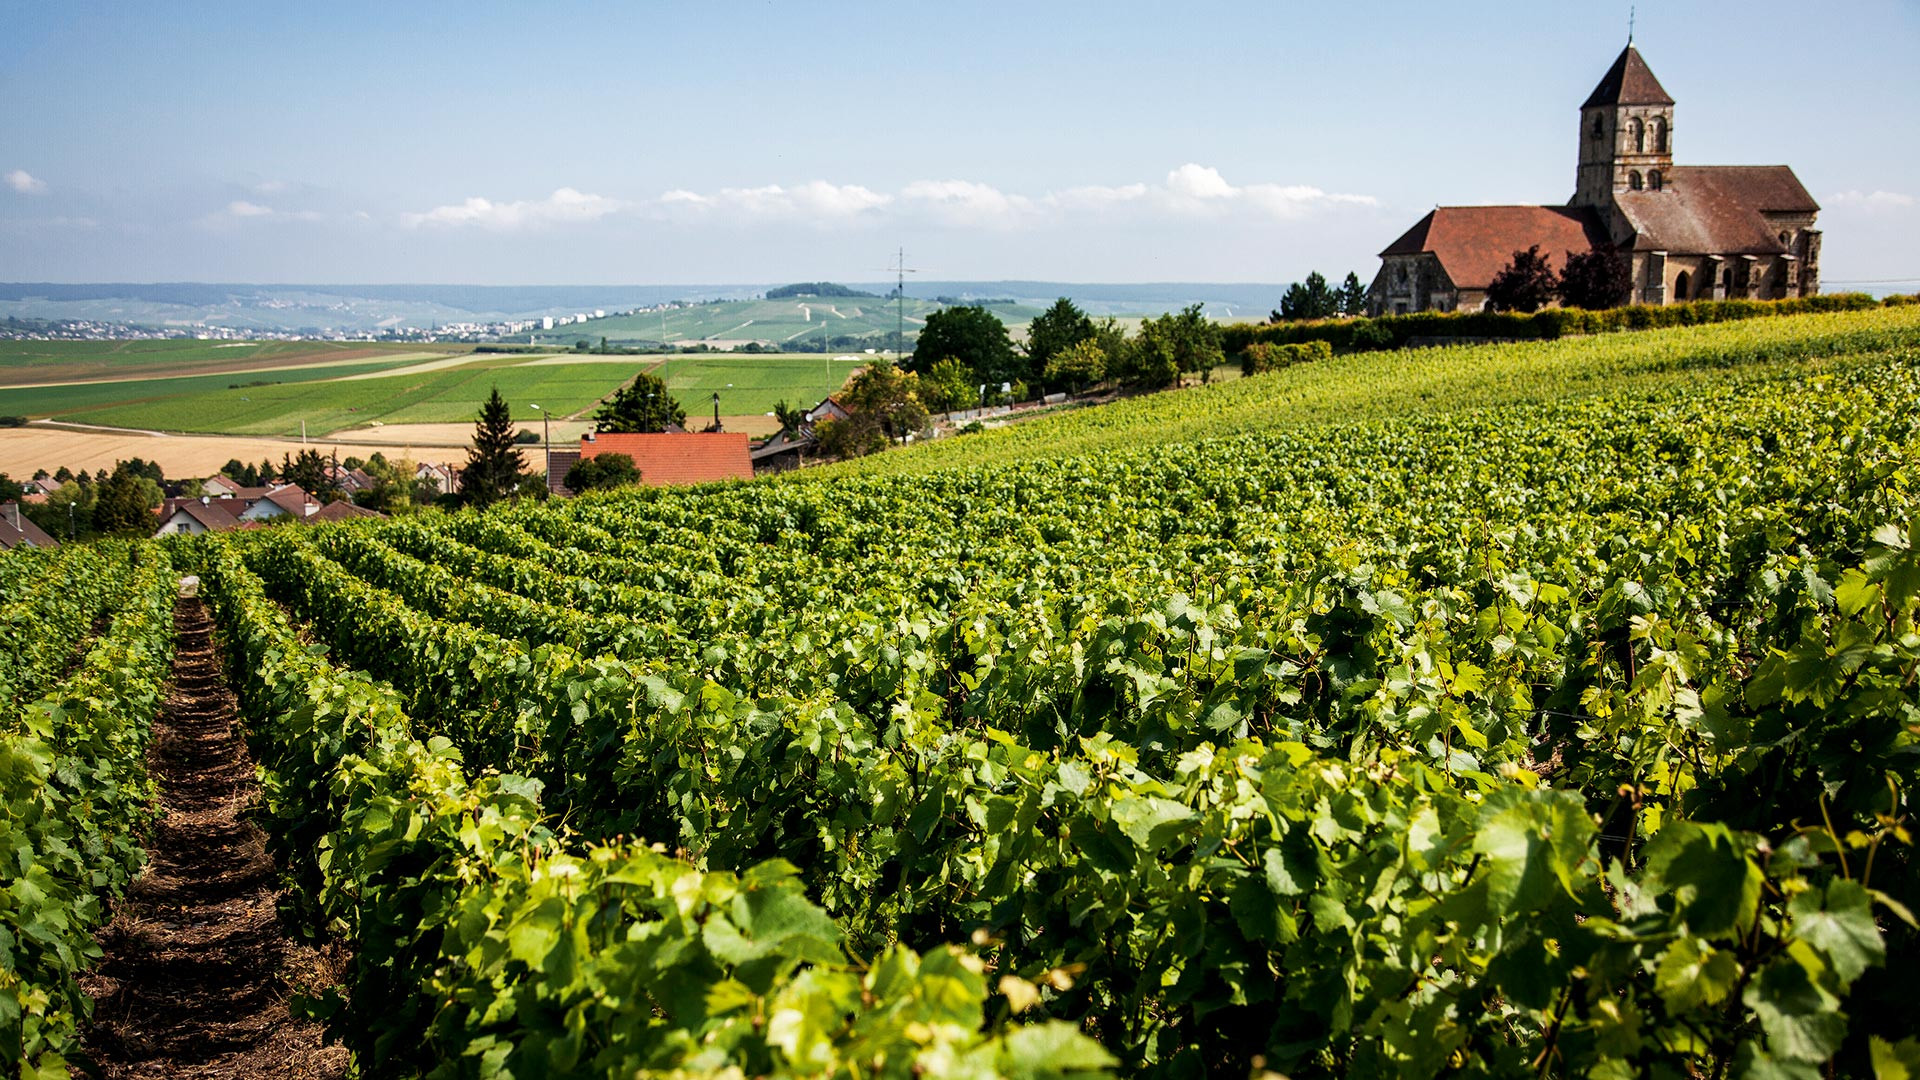 One of the vineyards owned by Bollinger